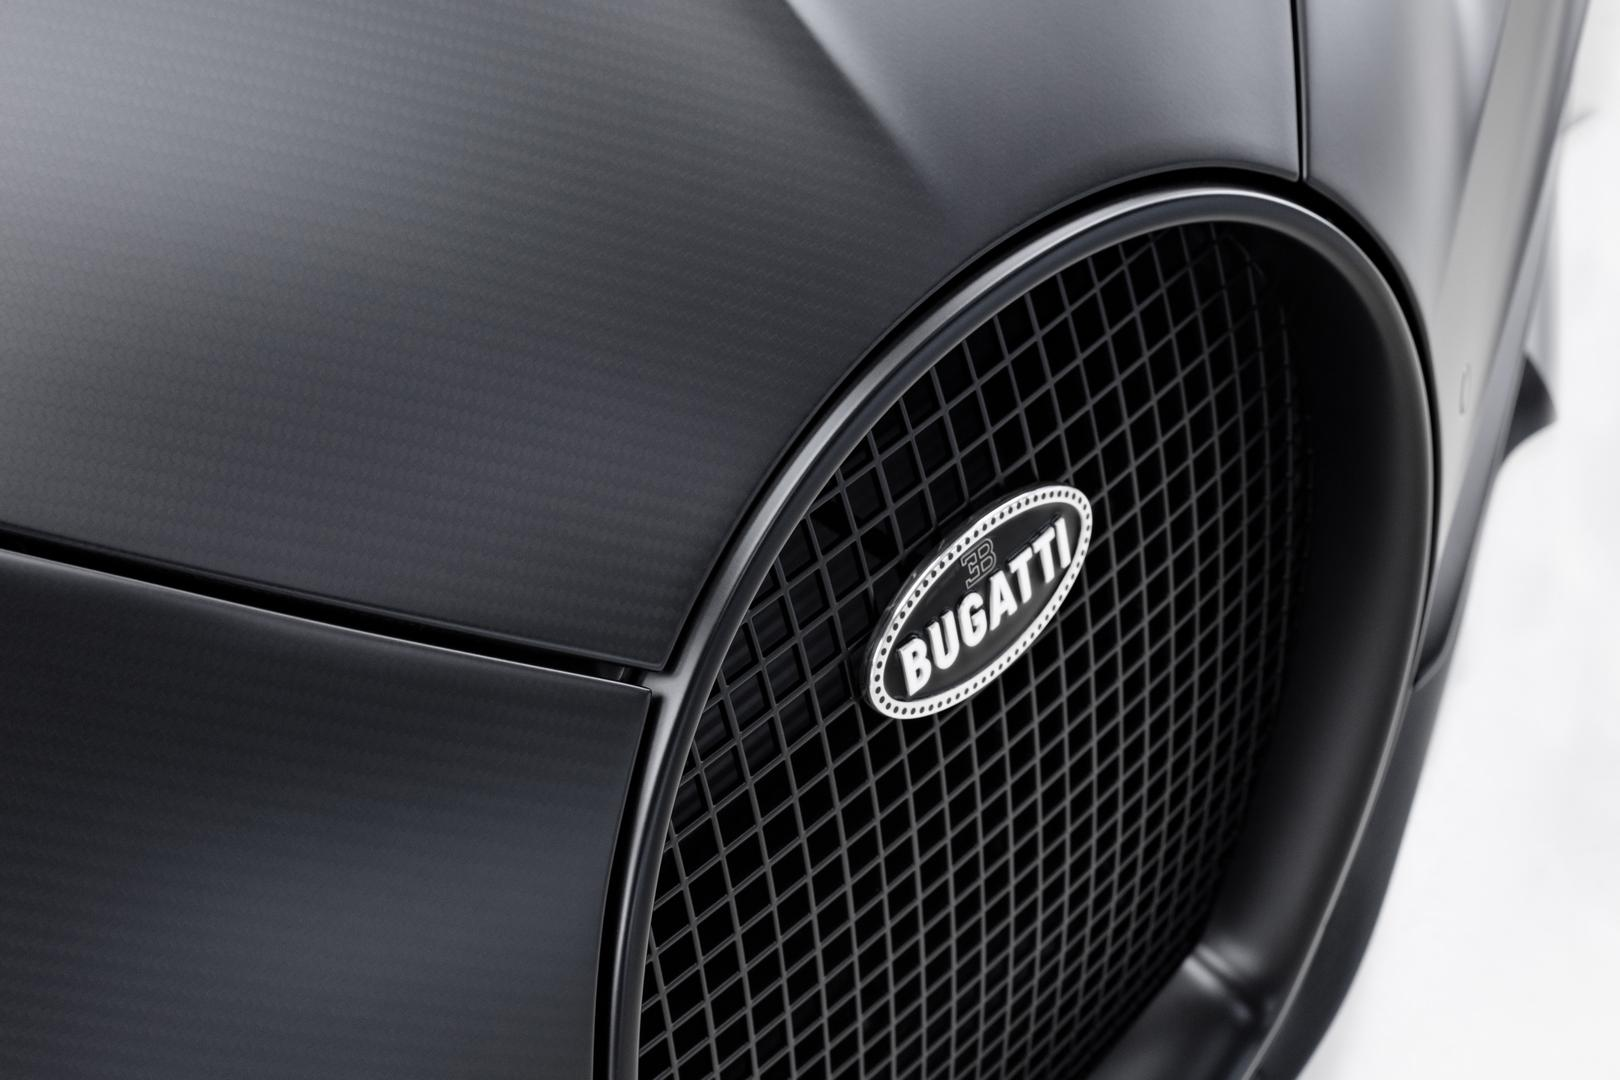 Bugatti Badge Black